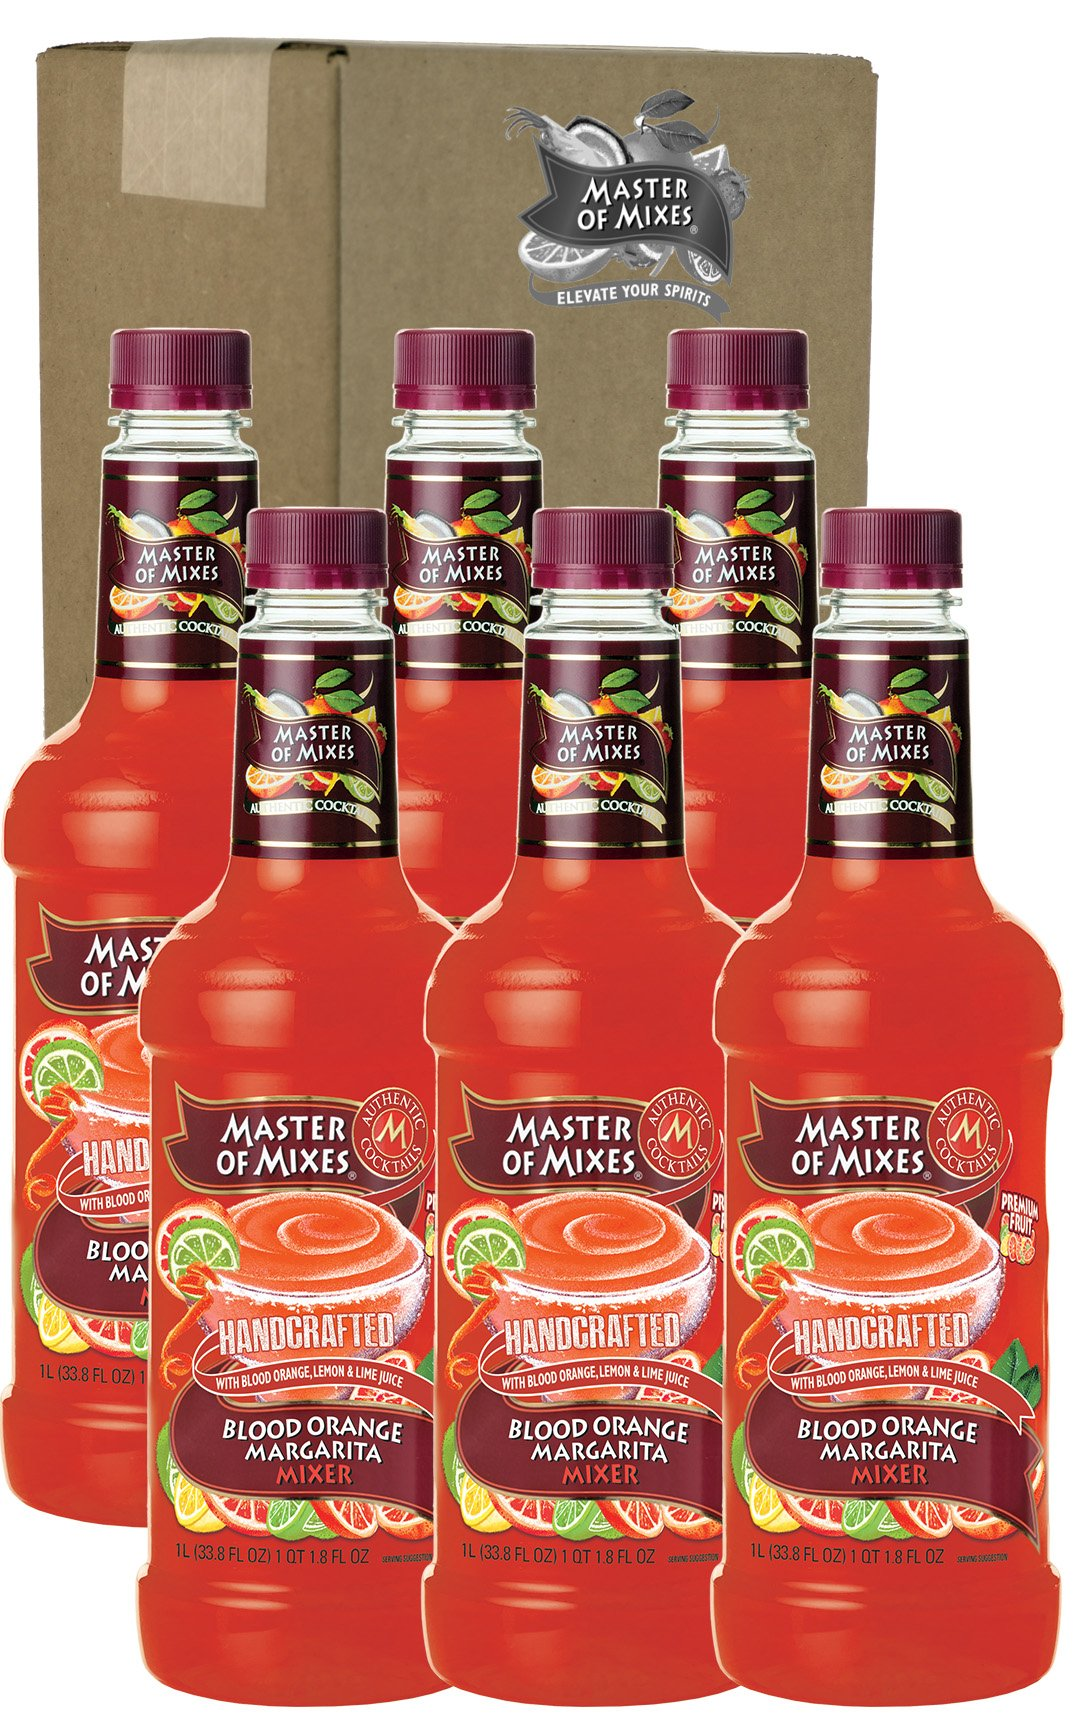 Master of Mixes Blood Orange Margarita Drink Mix, Ready To Use, 1 Liter Bottle (33.8 Fl Oz), Pack of 6 by Master of Mixes